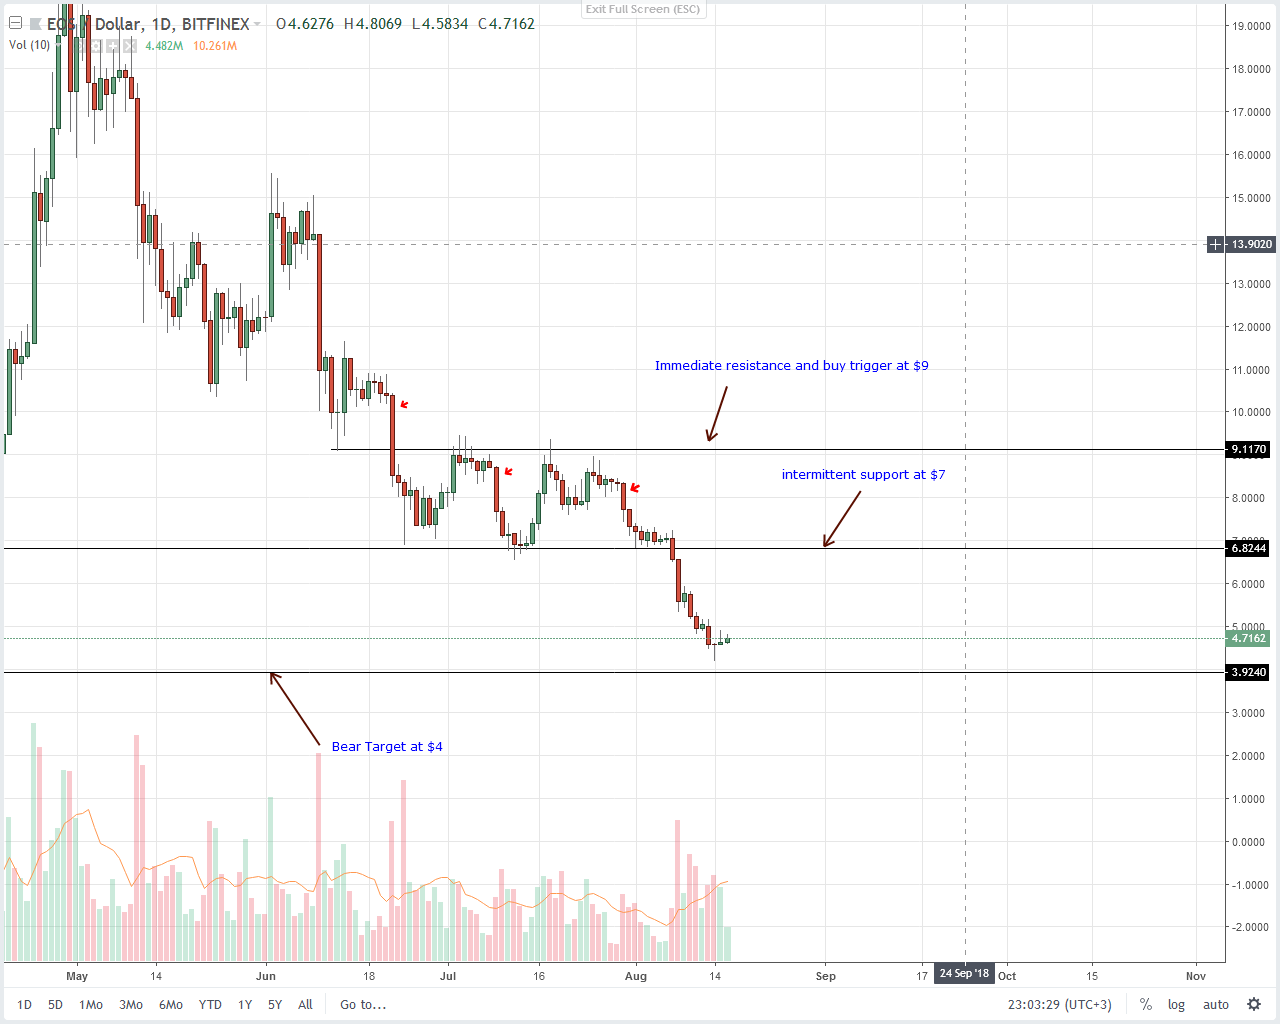 EOS Daily Chart Aug 17